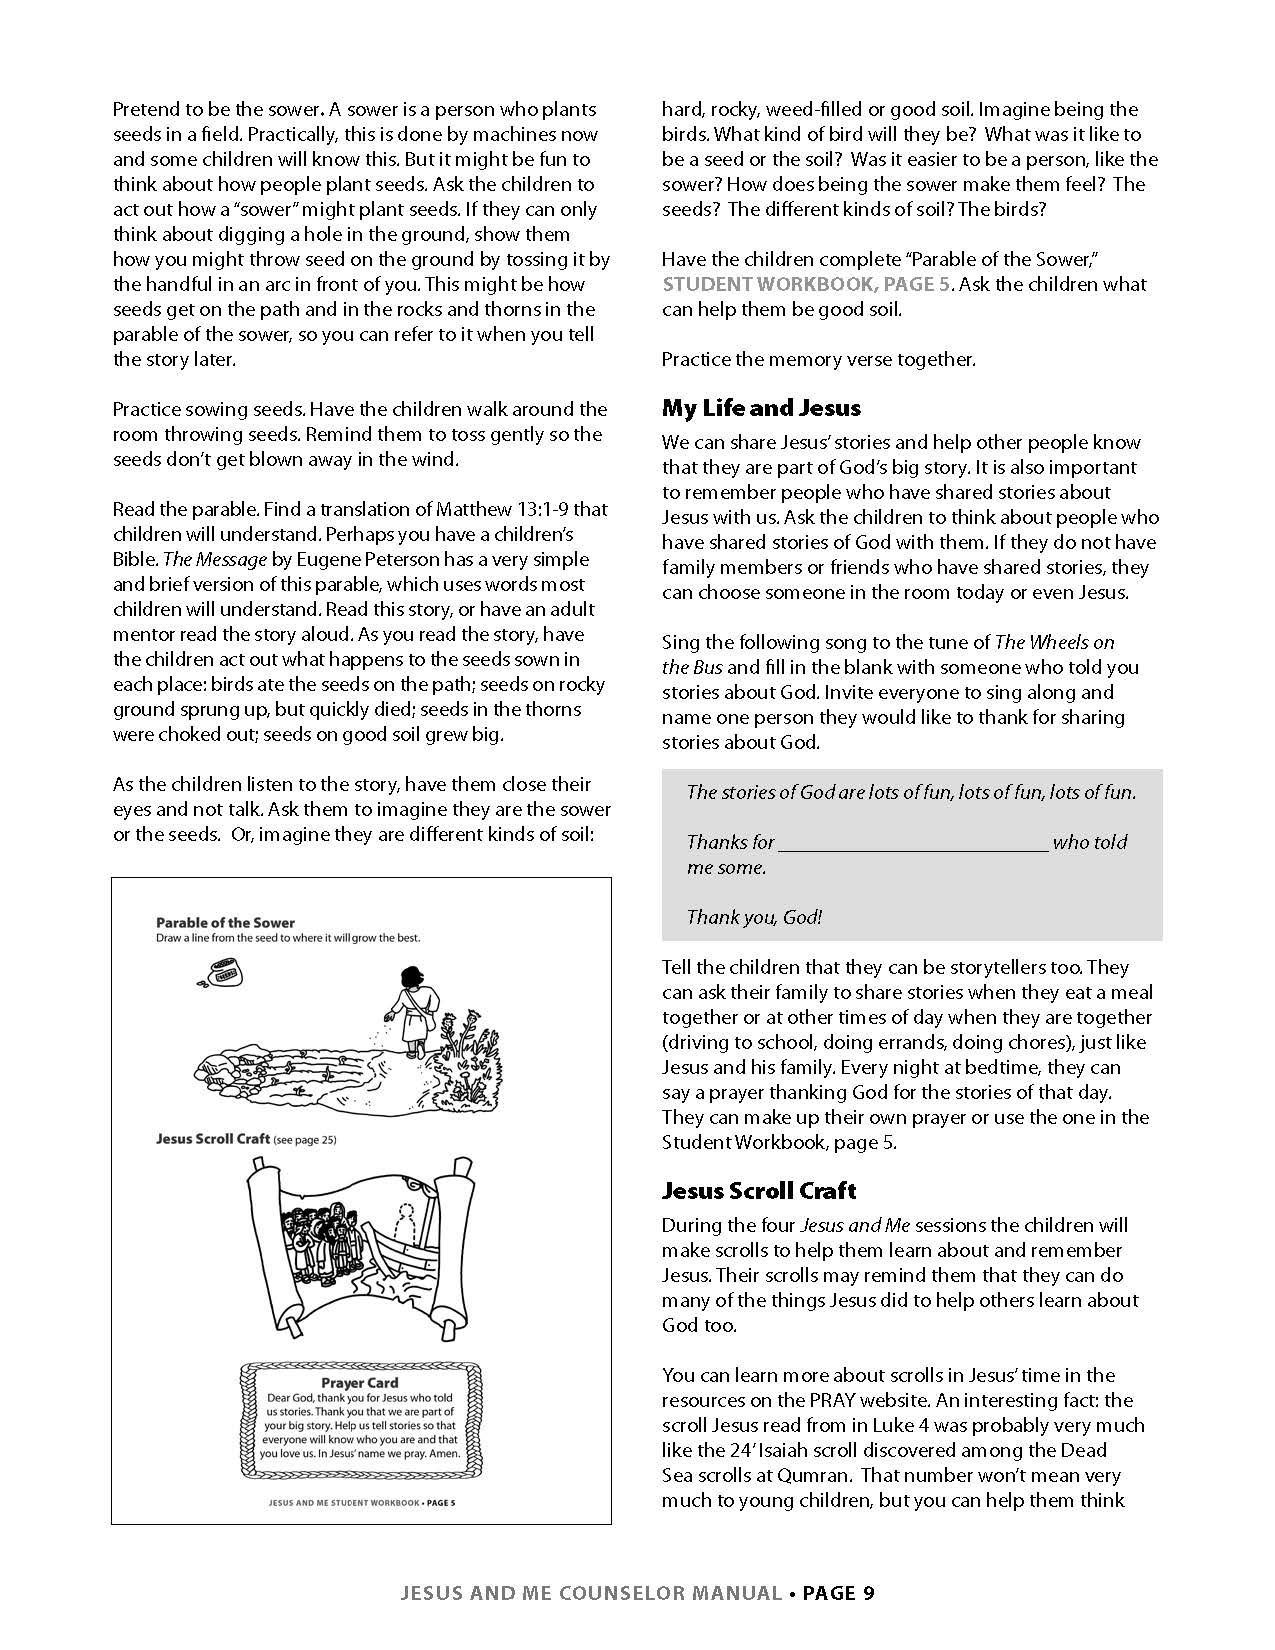 Jesus and Me Lesson 1 Page 4